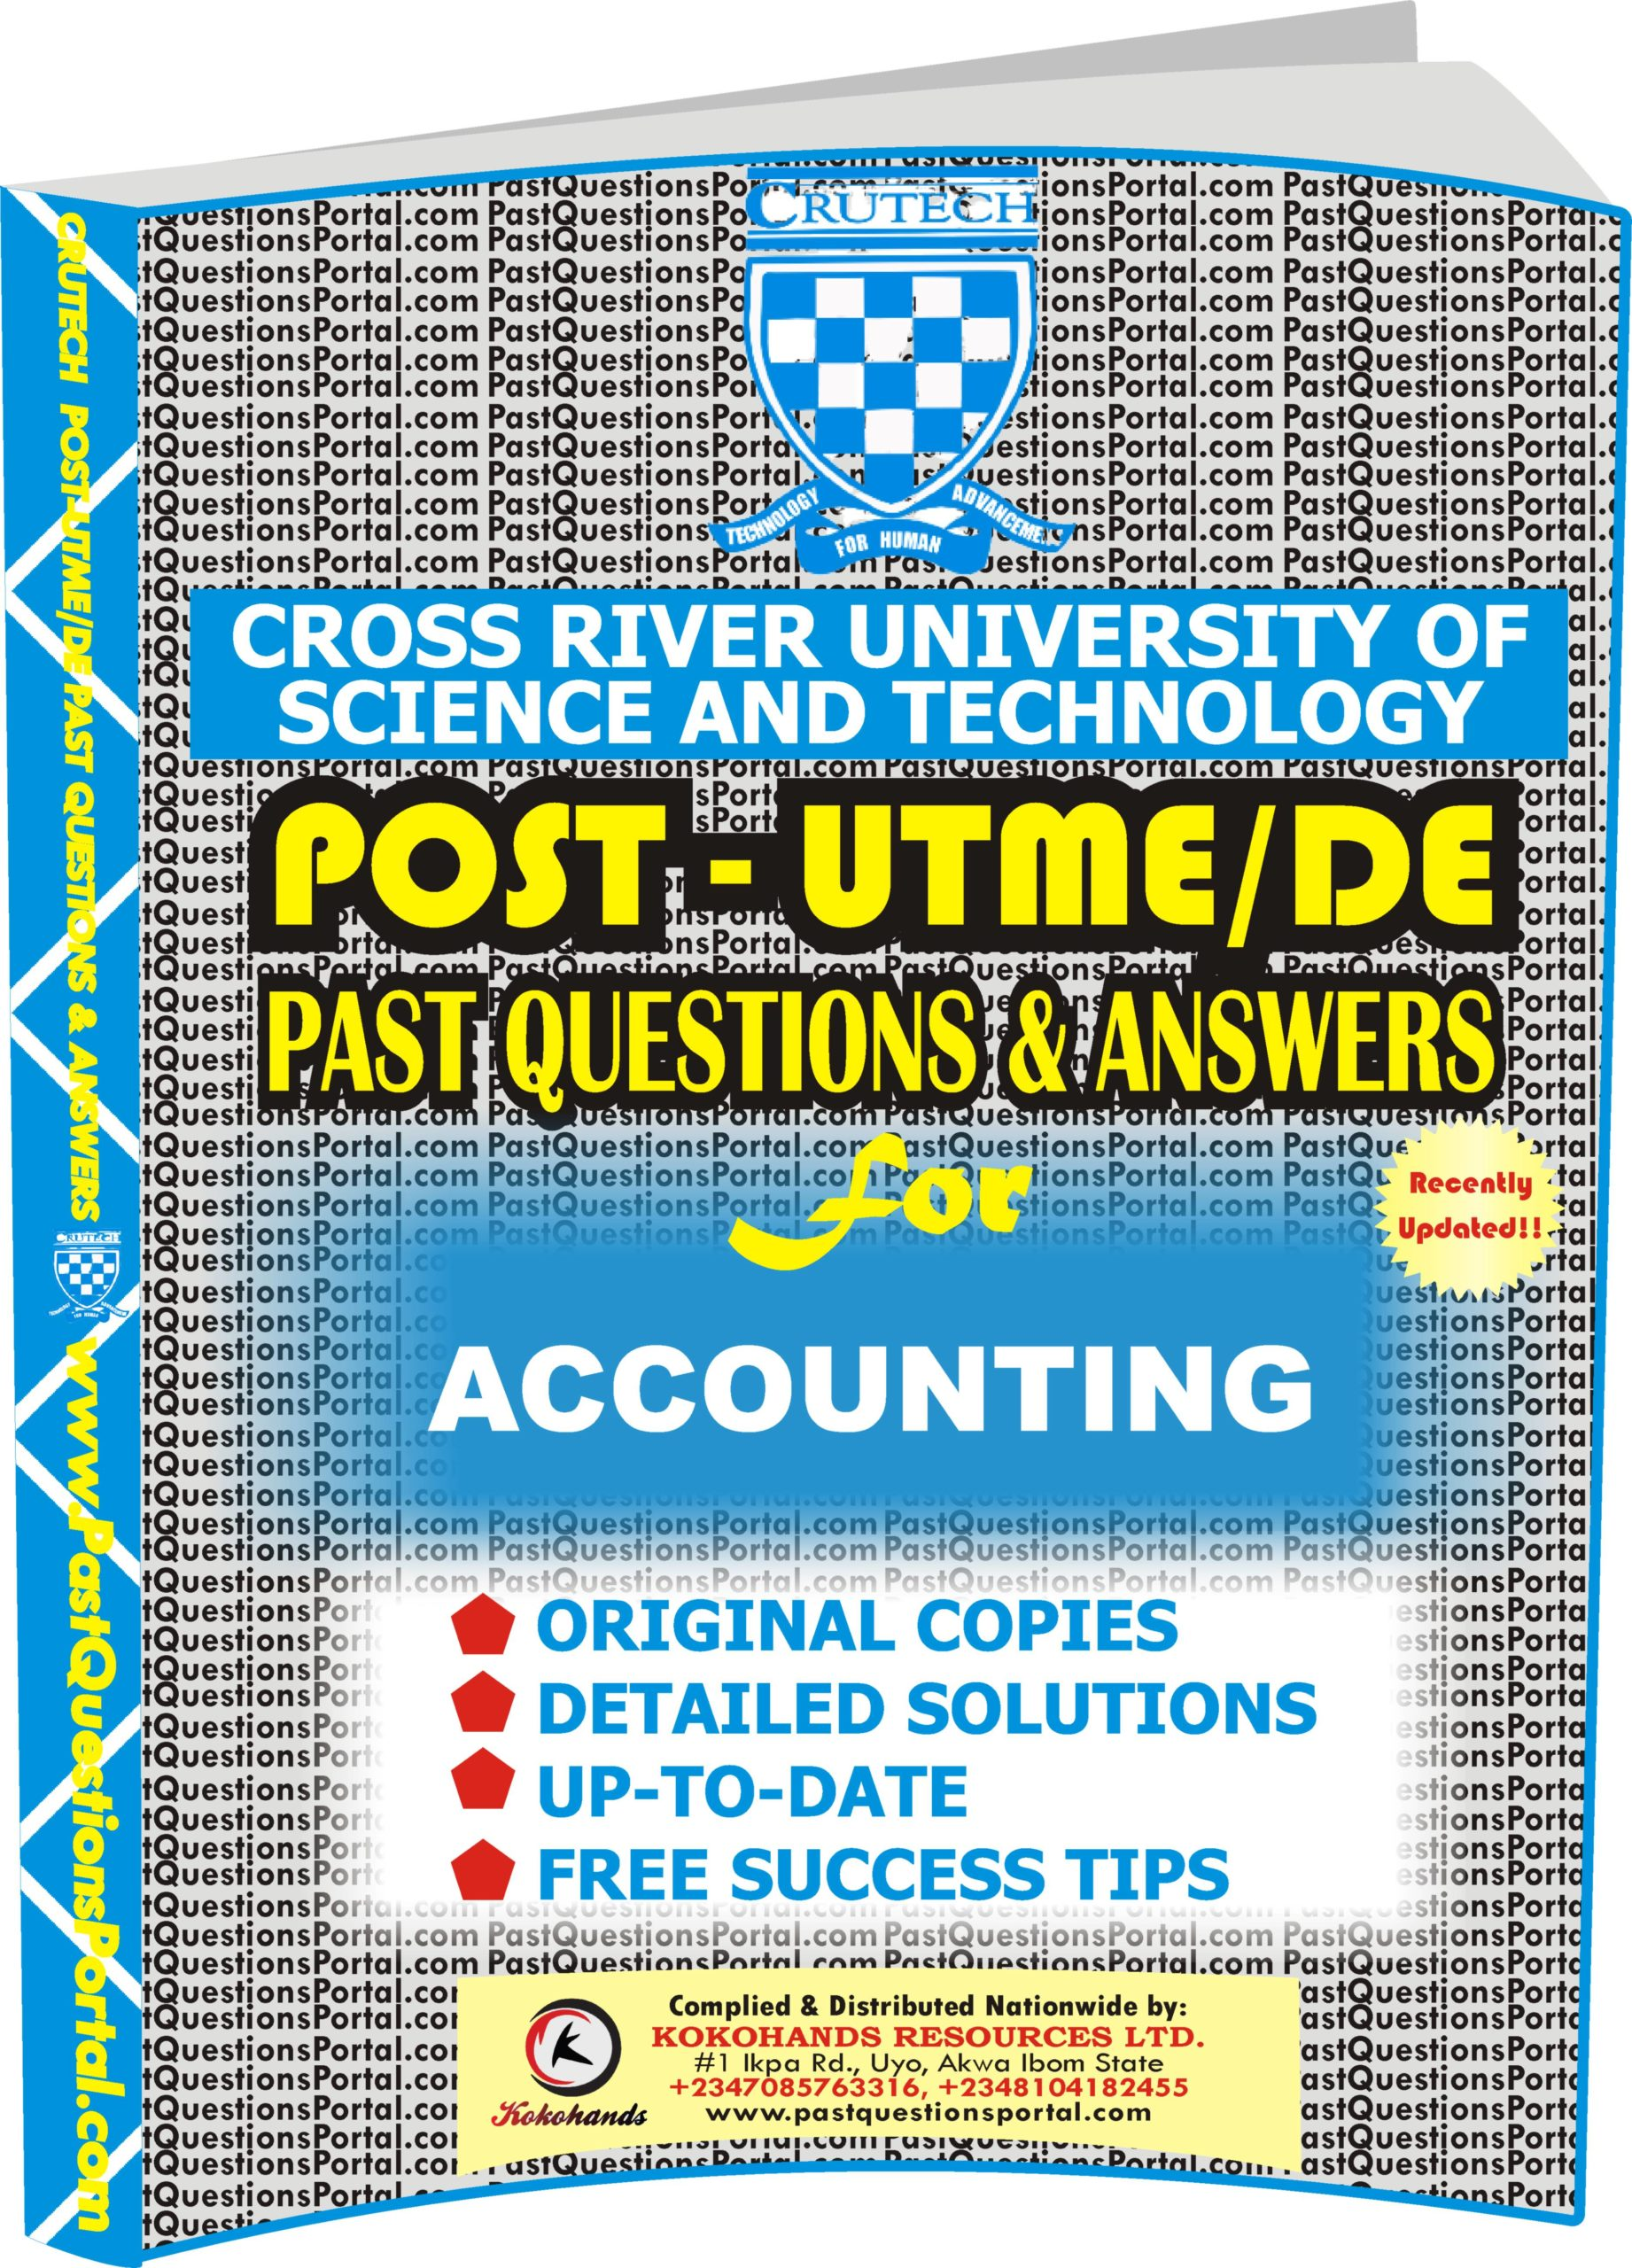 CRUTECH Post UTME Past Questions for ACCOUNTING